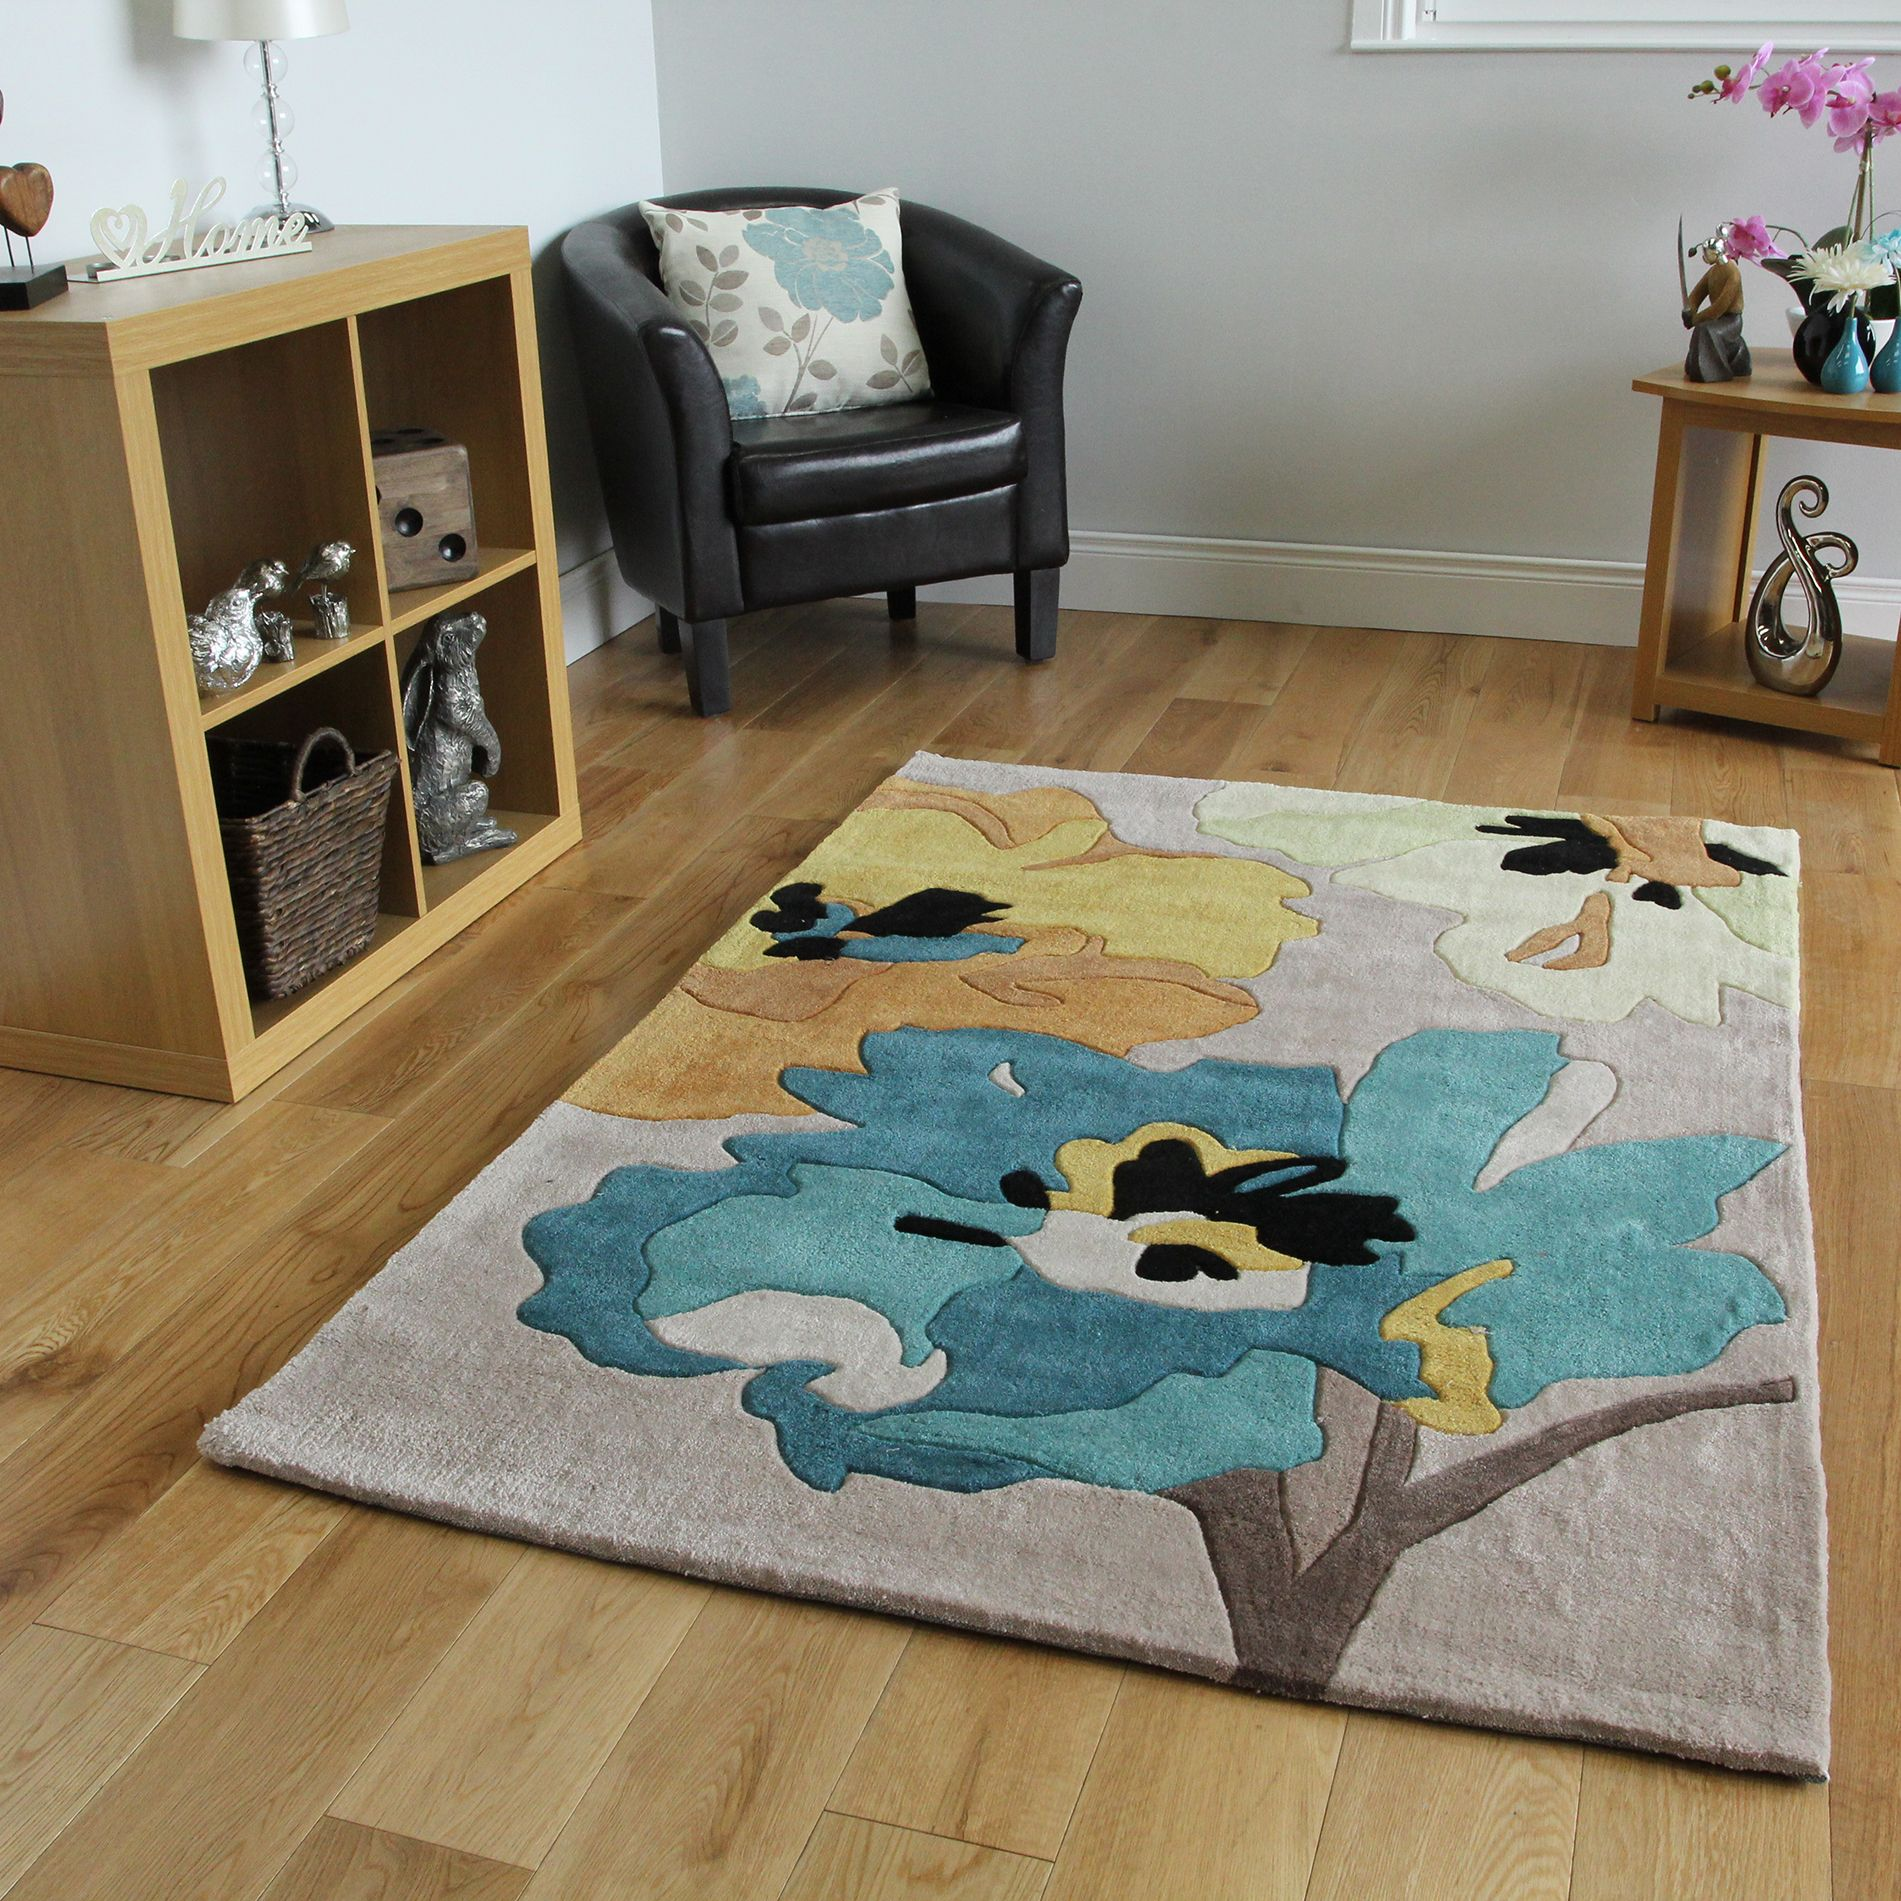 Teal & Yellow Floral Contemporary Rug Burano Small on sale